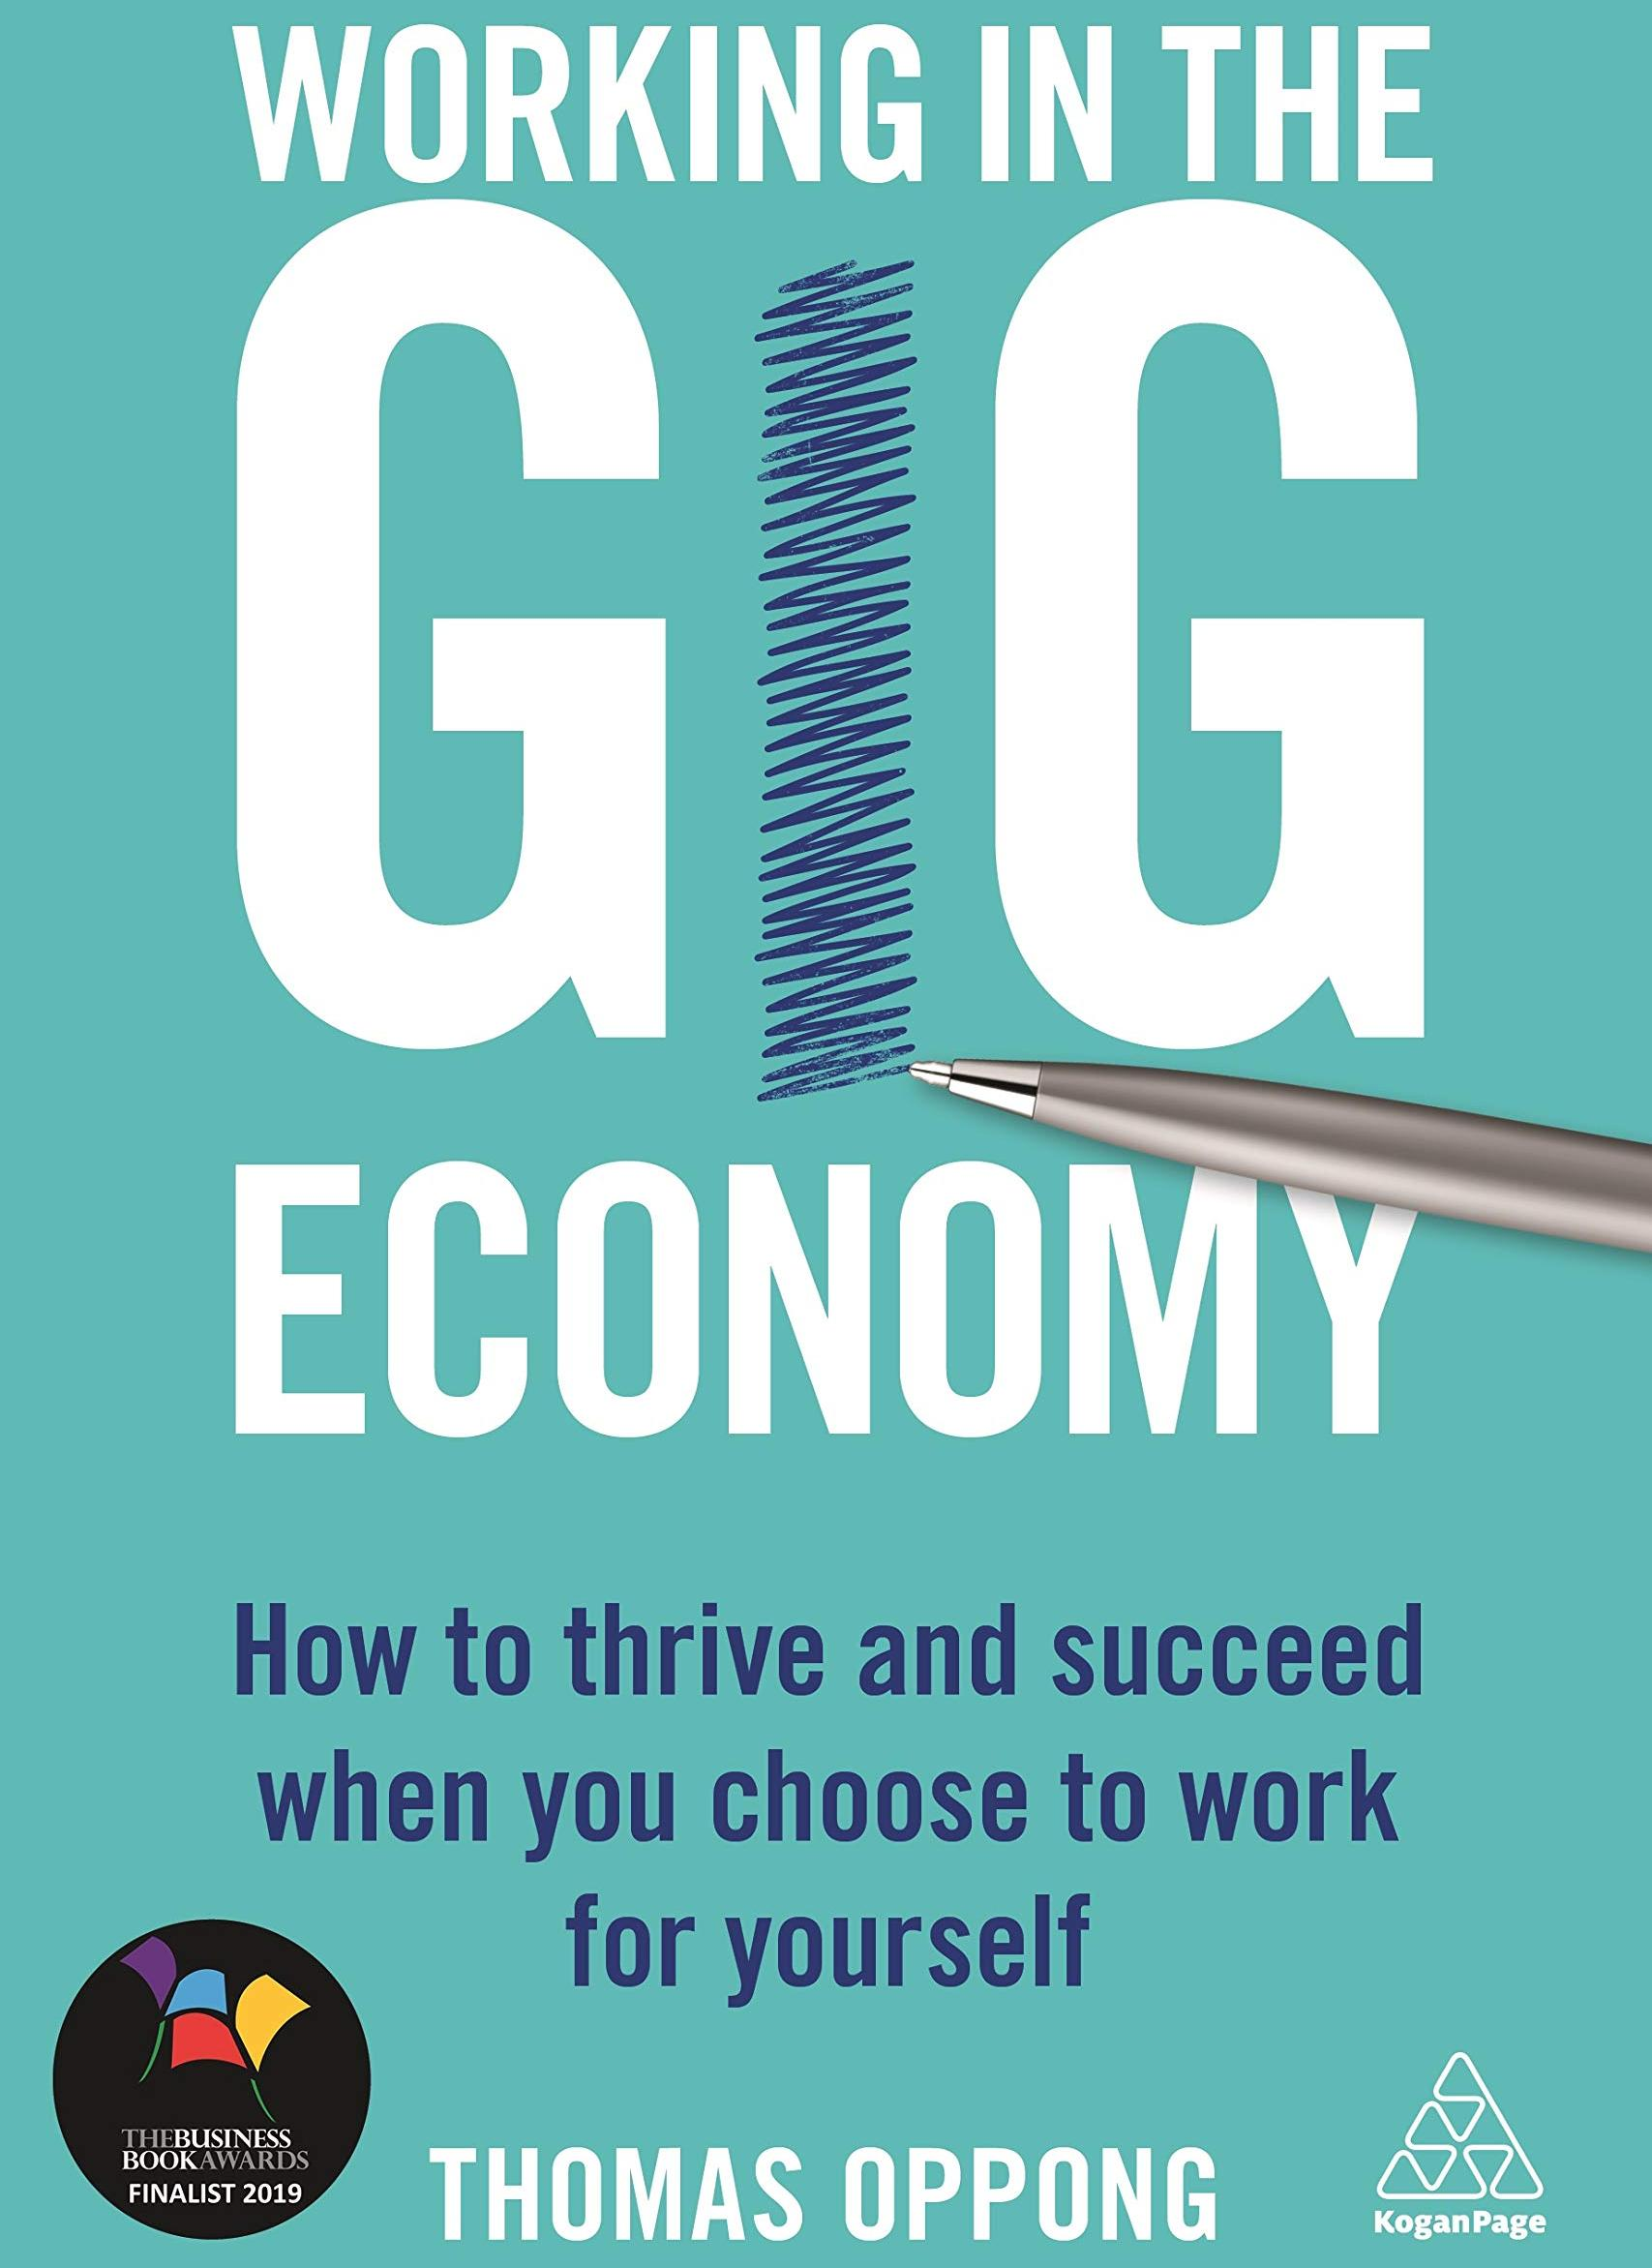 Working in the Gig Economy: How to Thrive and Succeed When You Choose to Work for Yourself - Thomas Oppong - quotes, rating, reviews, where to buy